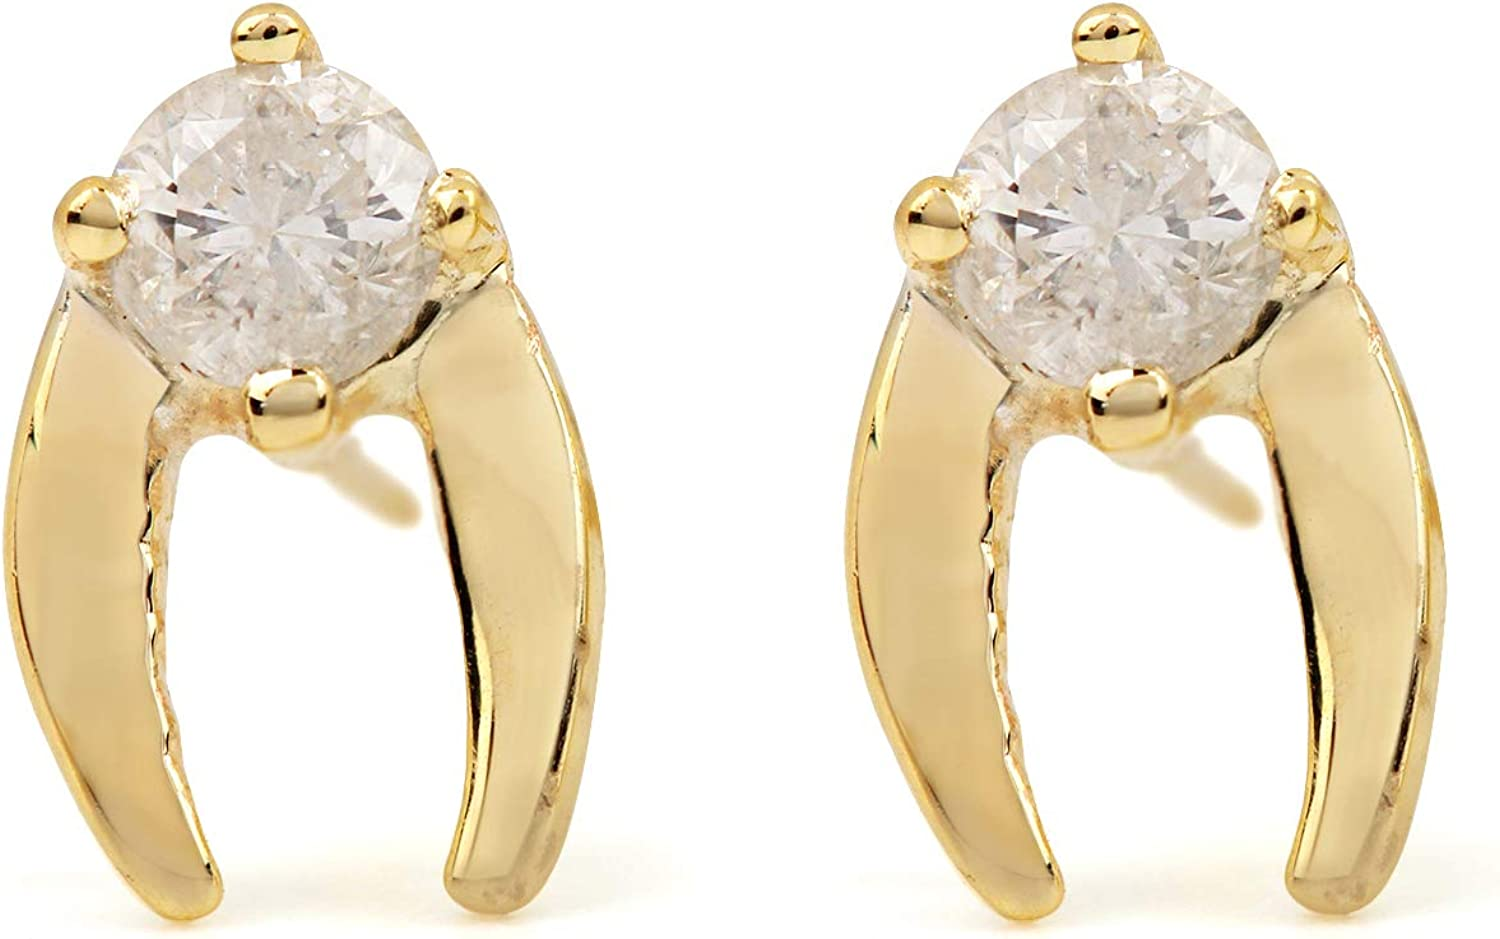 ASHNE JEWELS IGI Certified 0.19ct Natural Diamond (G-H Diamond Color and I1-I2 Diamond Clarity) Stud Earrings Made in Solid Yellow Gold Jewelry For Women and Girls